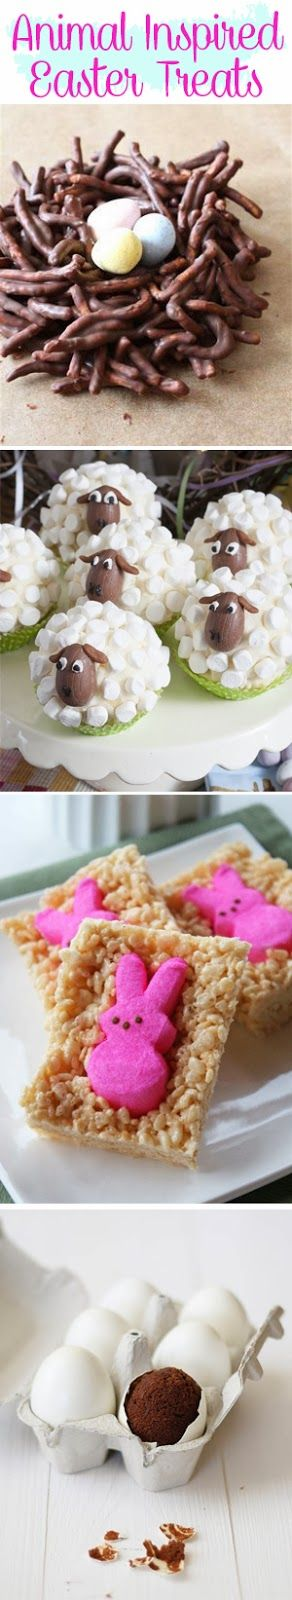 Animal Inspired Easter Treats